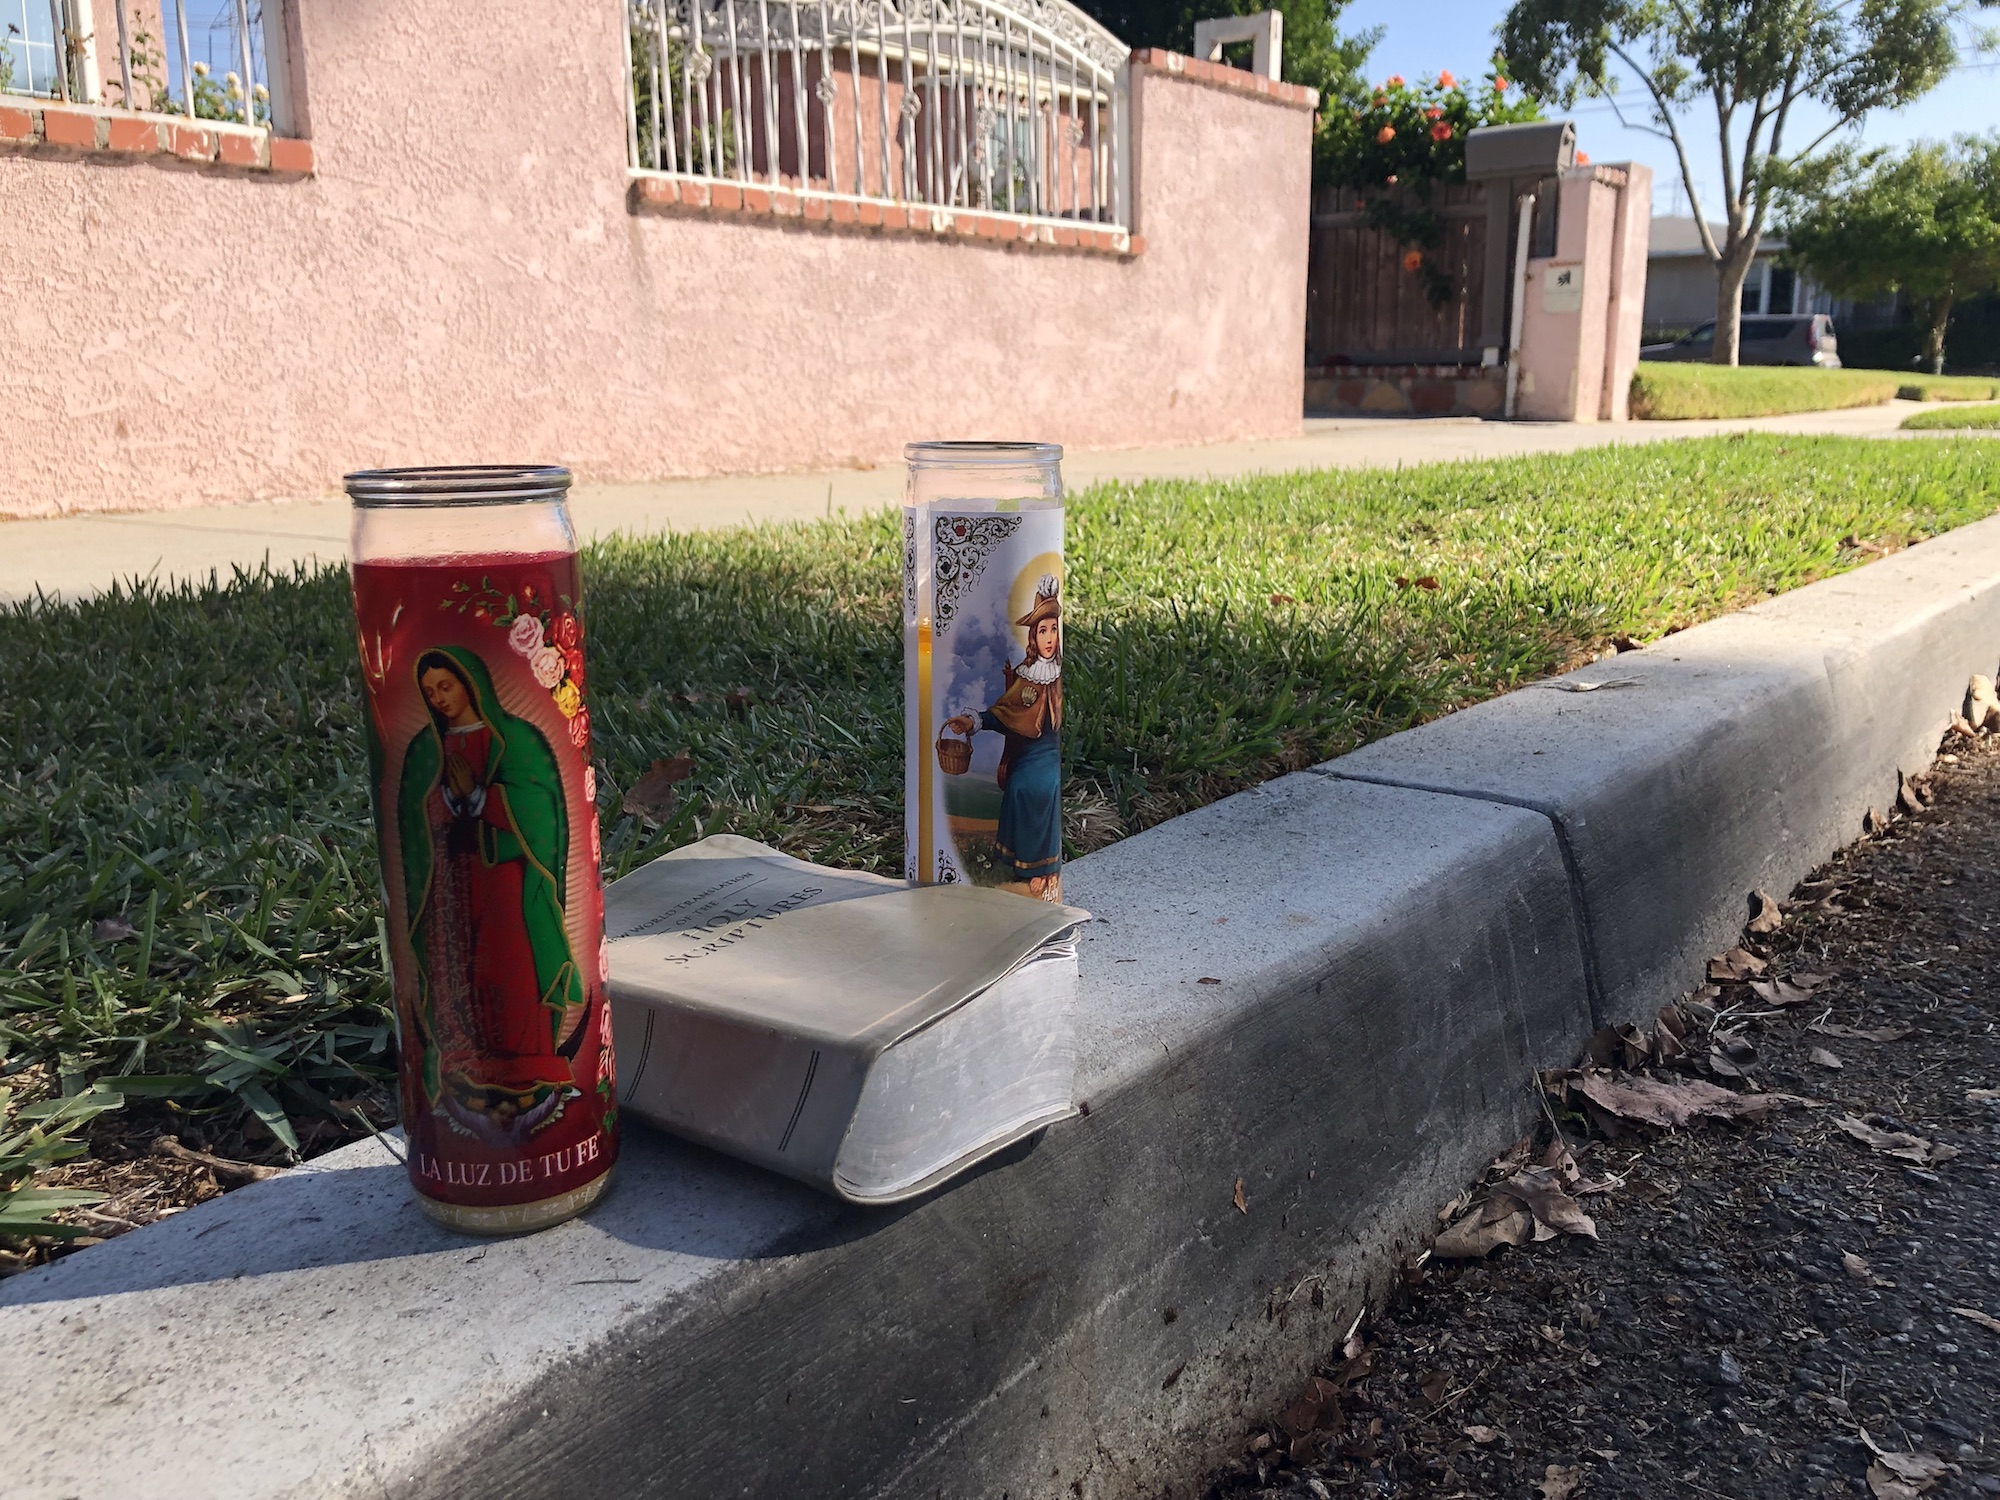 Police say young man was ambushed in 2019 gang shooting, announce sixth arrest • Long Beach Post News